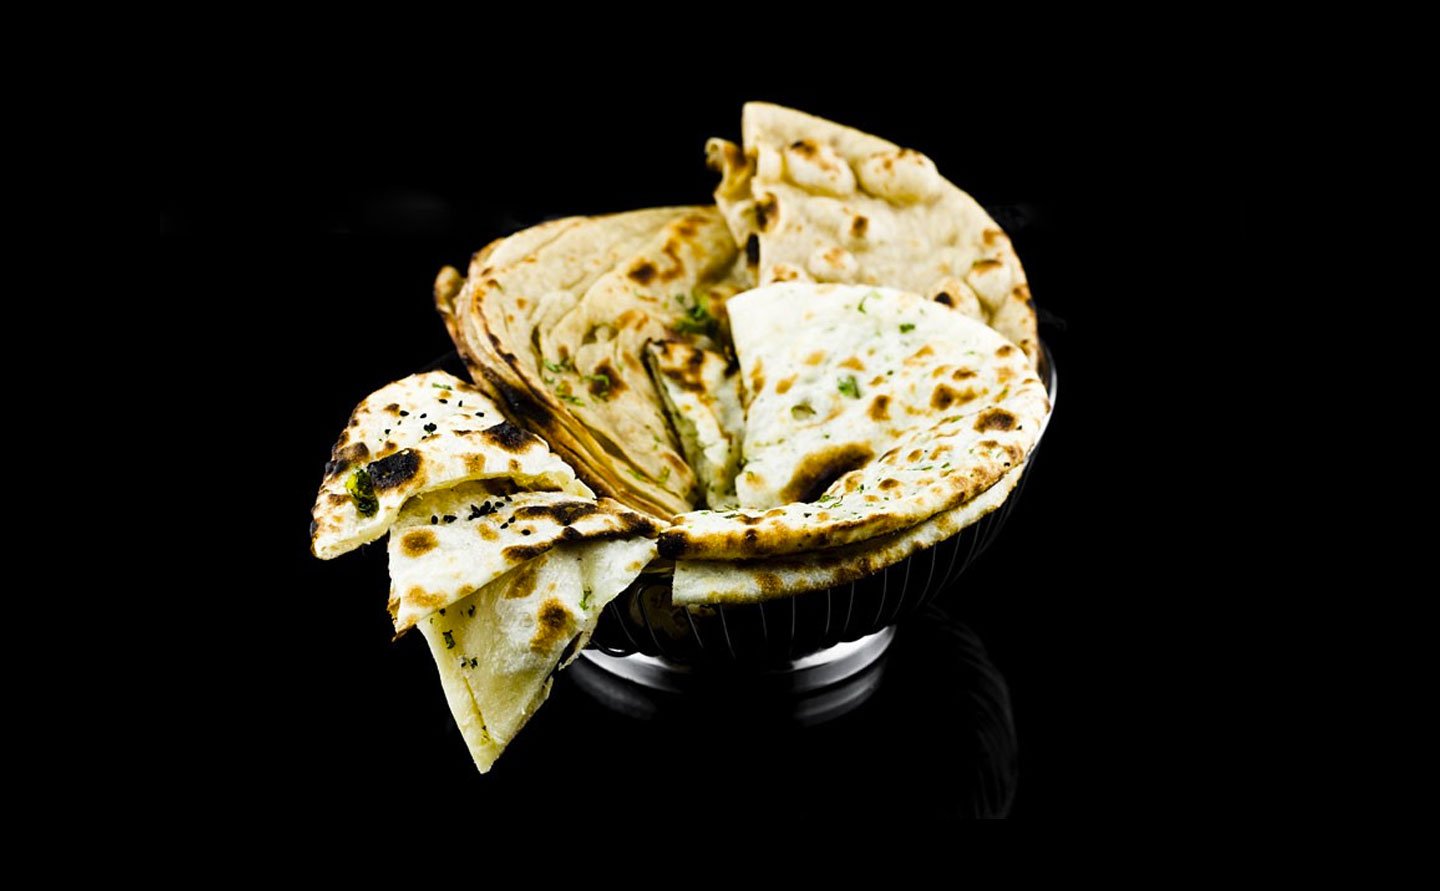 Rupa Vira's The Signature - Finest Indian Cuisine image 2